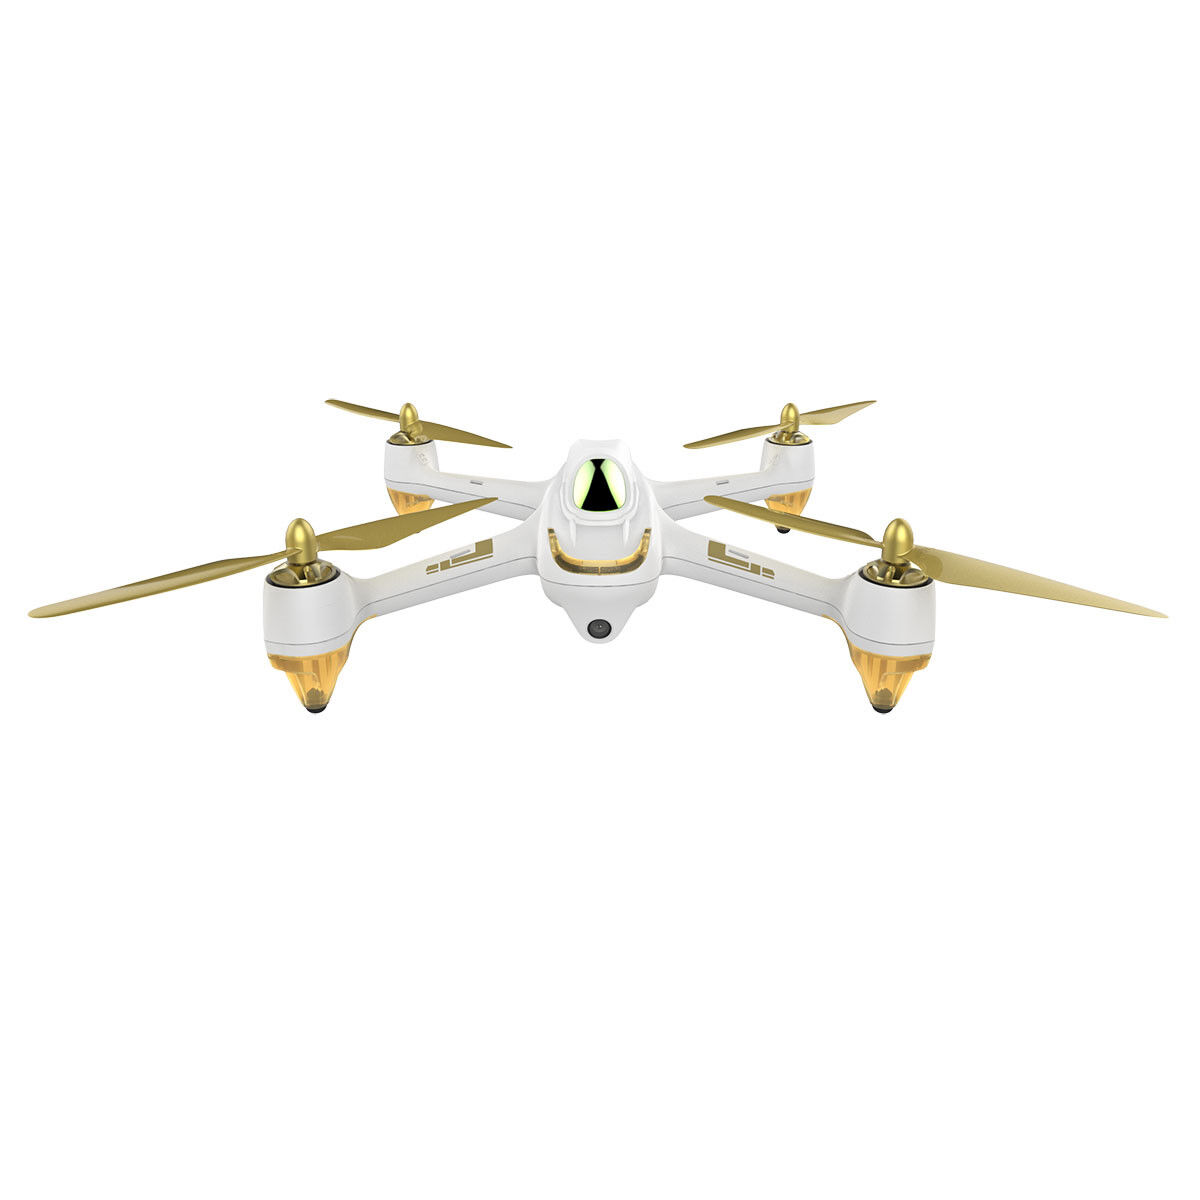 Hubsan H501S X4 FPV RC Quadcopter 5.8G 1080P Brushless Follow Follow Follow Me GPS 2 Batteries 848b87